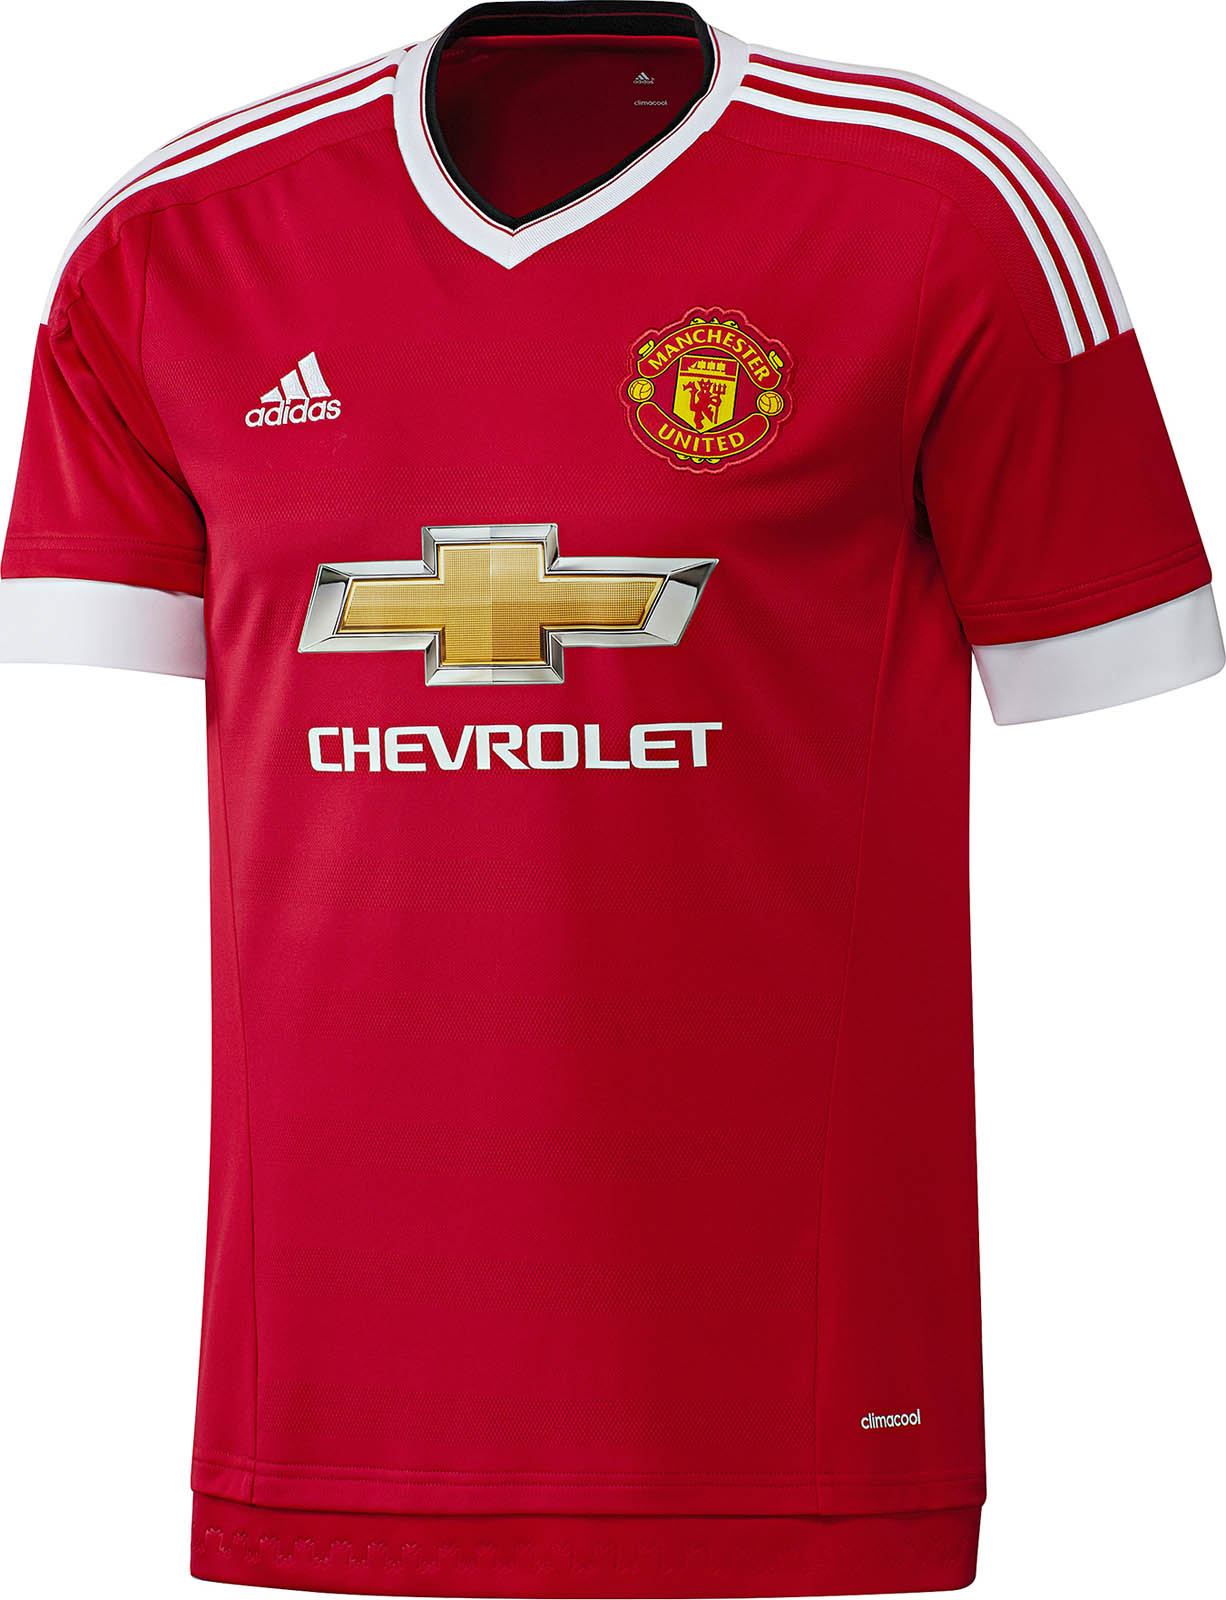 timeless design 8c4f5 e75cf MANCHESTER UNITED NEW KIT - Nusrene Nama